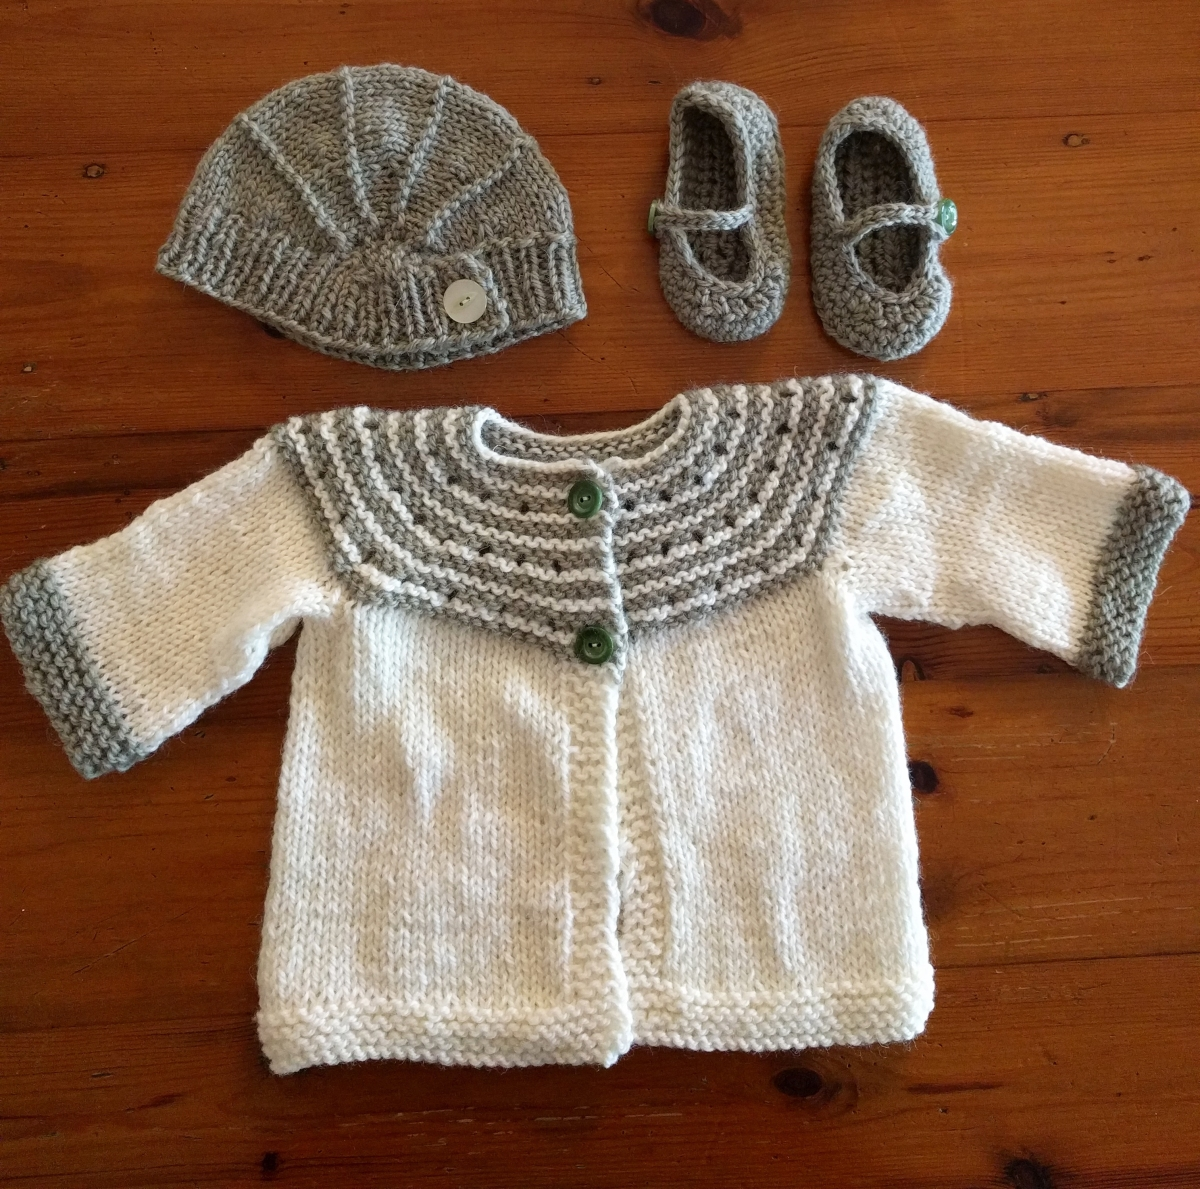 An Extensive Knitted Layette, and Reflections on a LifeUnlived